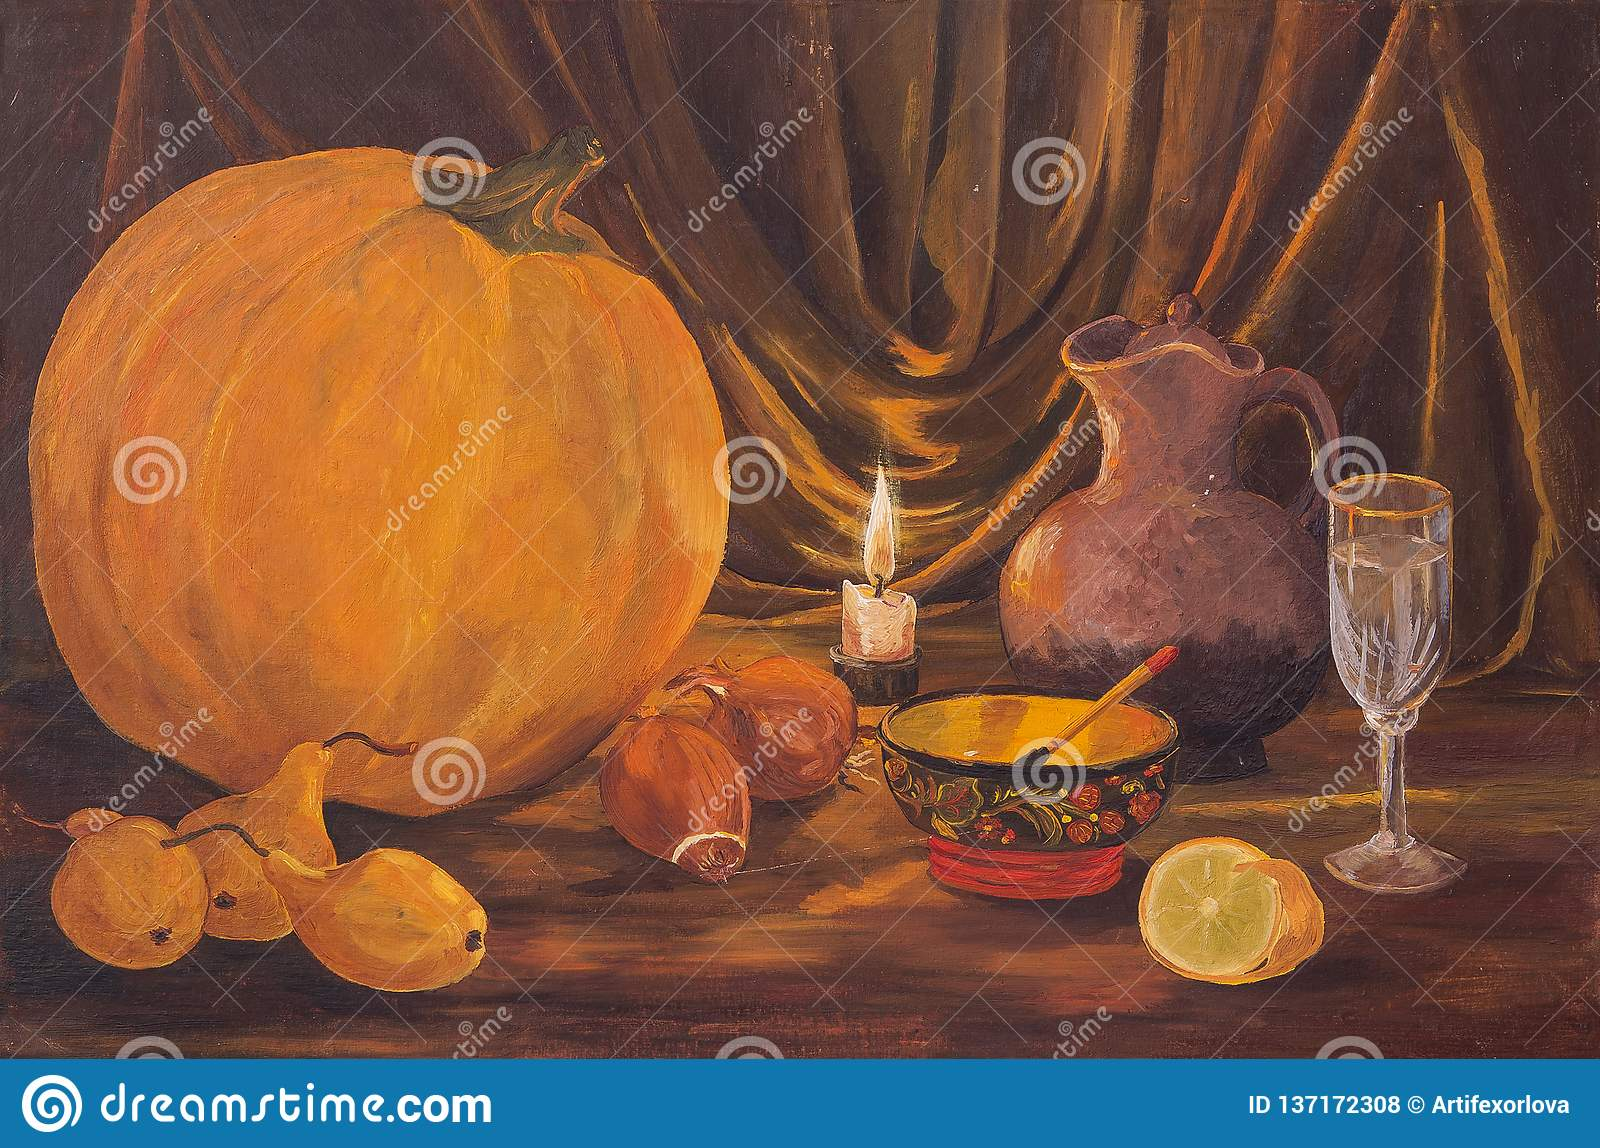 Autumn dark Thanksgiving concept with pumpkins, pear, onions, lemon, bowl, wine glass, jug and burning candles on table